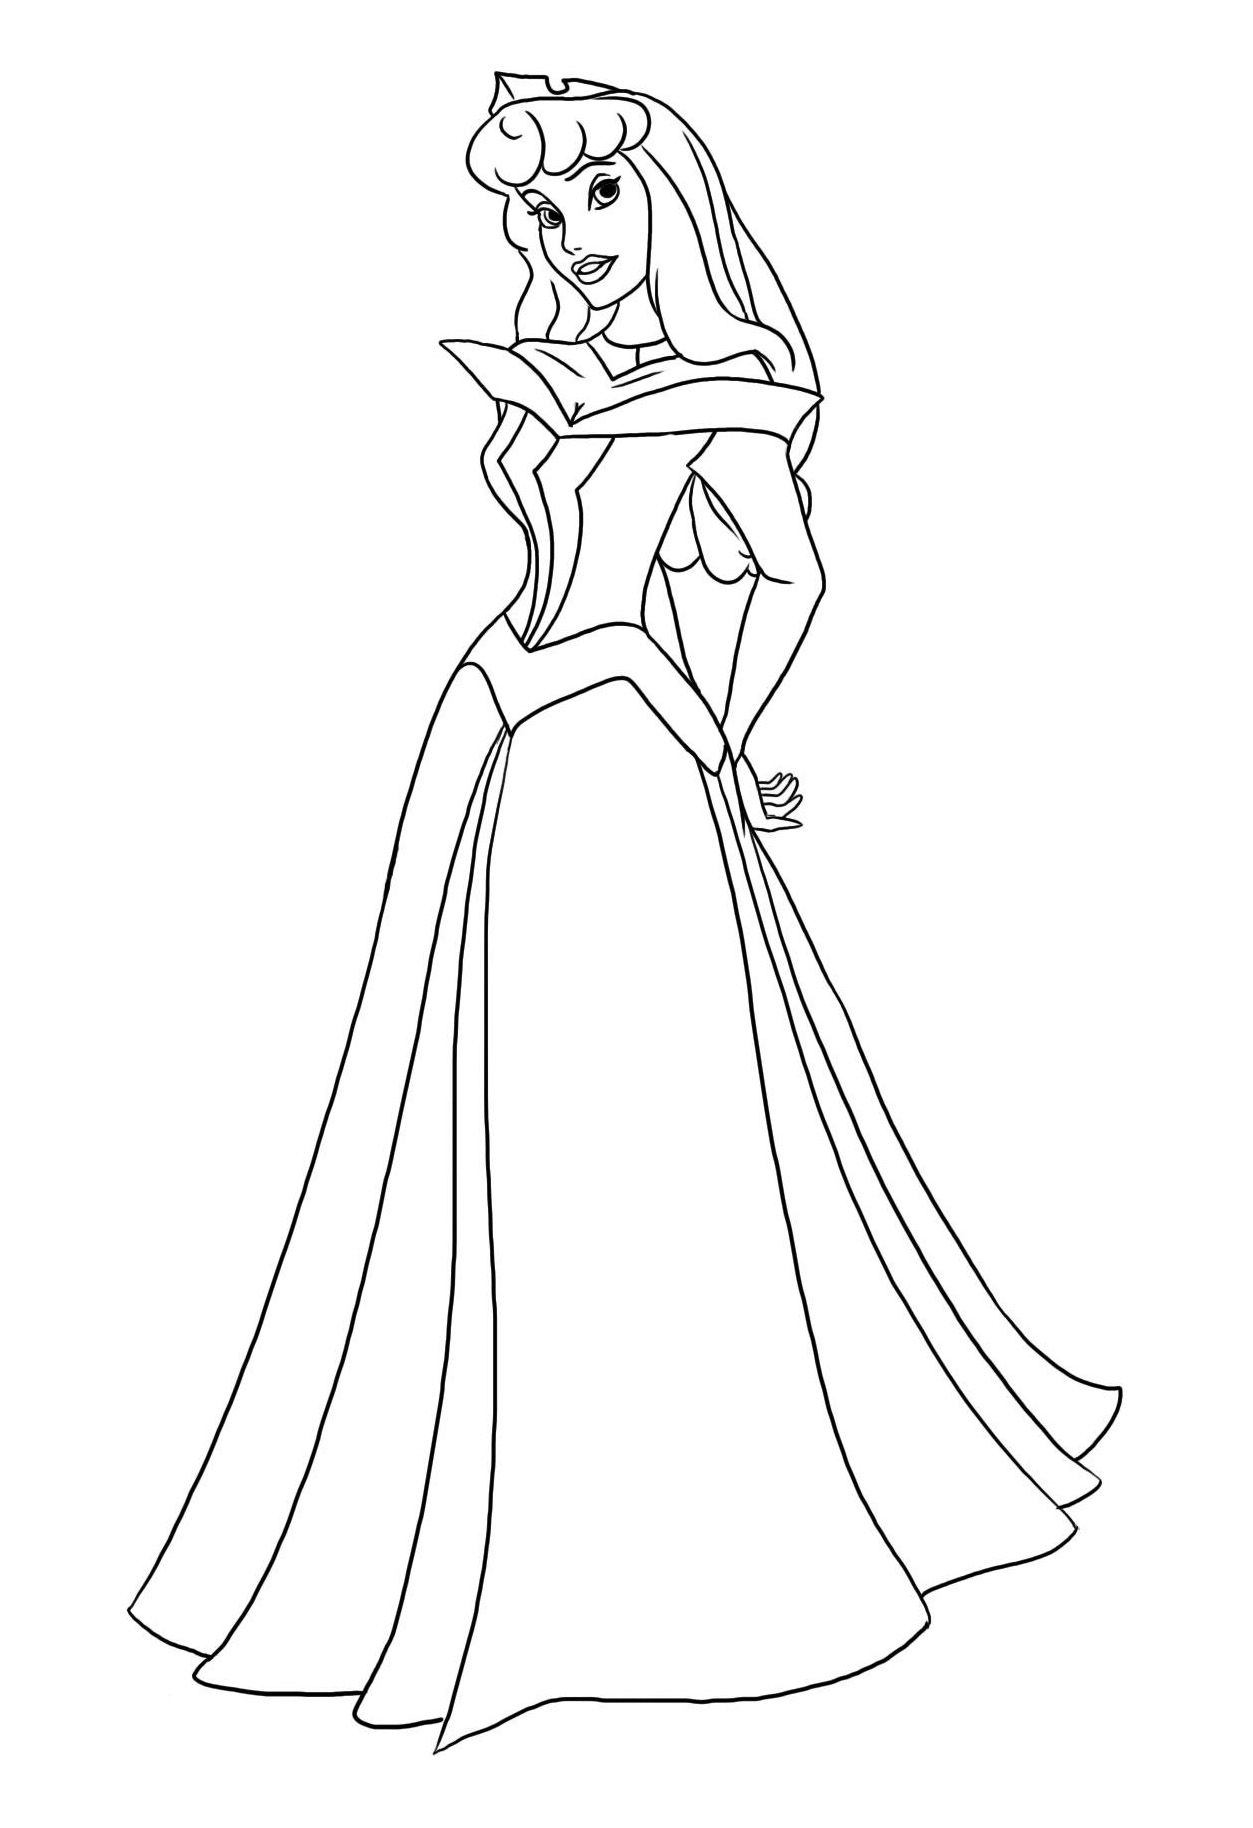 Coloriage princesse colorier dessin imprimer animaux princess coloring pages disney - Dessins a colorier gratuit ...